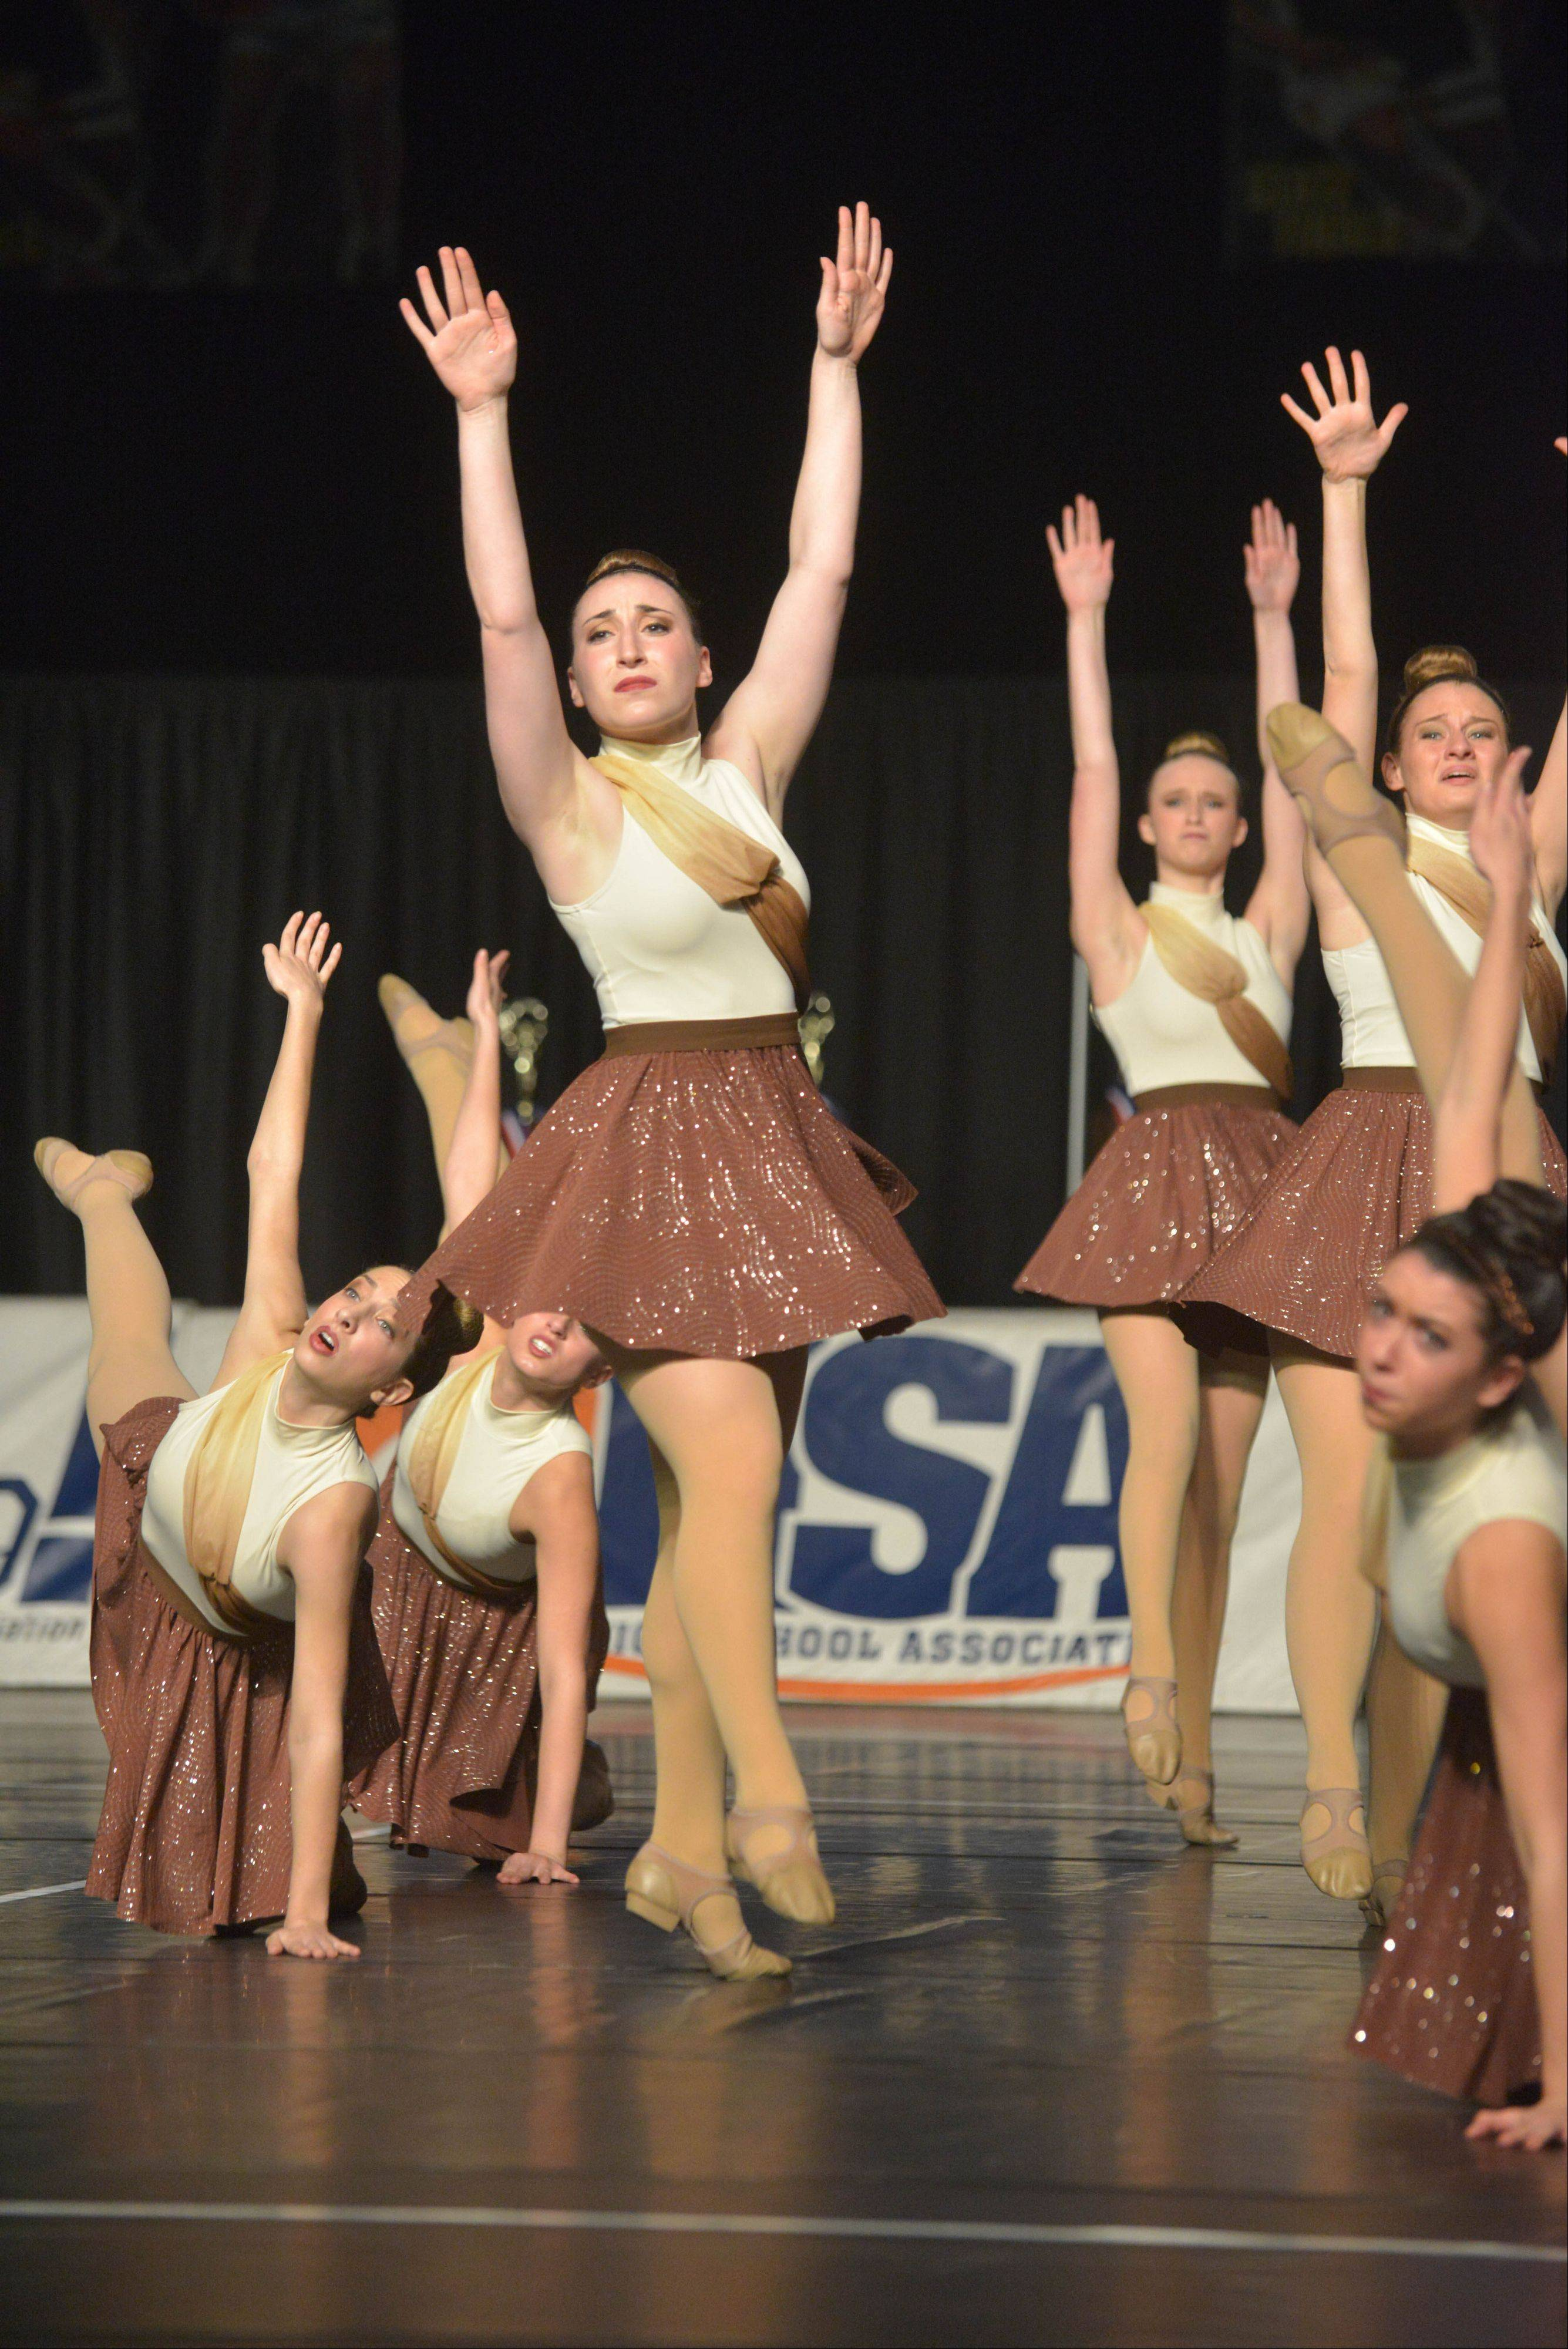 Stevenson High School took part in the IHSA Dance State Final at U.S. Cellular Coliseum in Bloomington Saturday. 90 teams vied for state champion at this event.